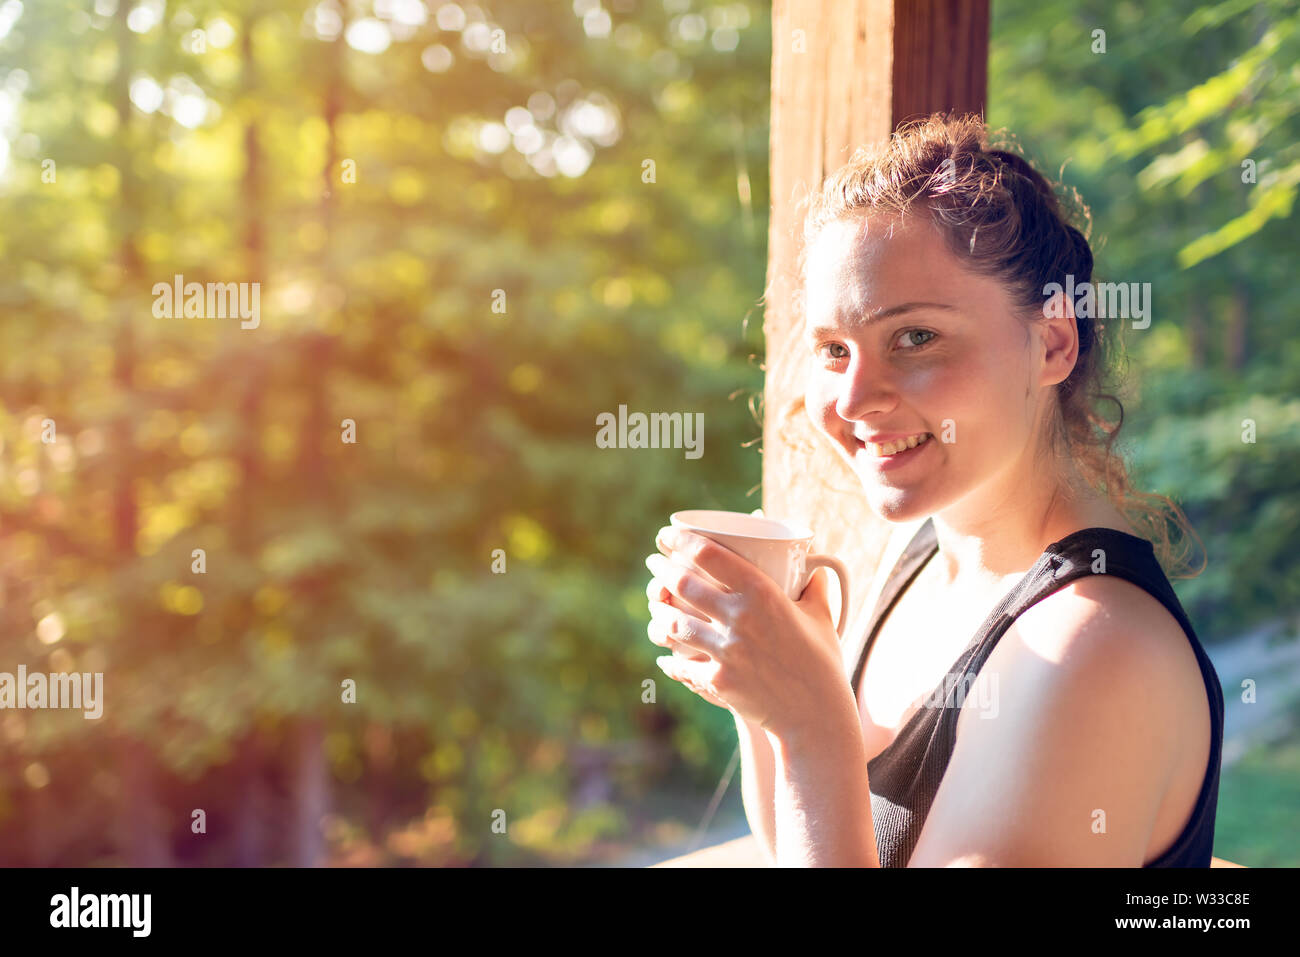 Wom standing on porch of house in morning wooden cabin cottage drinking coffee or tea with sunrise light - Stock Image